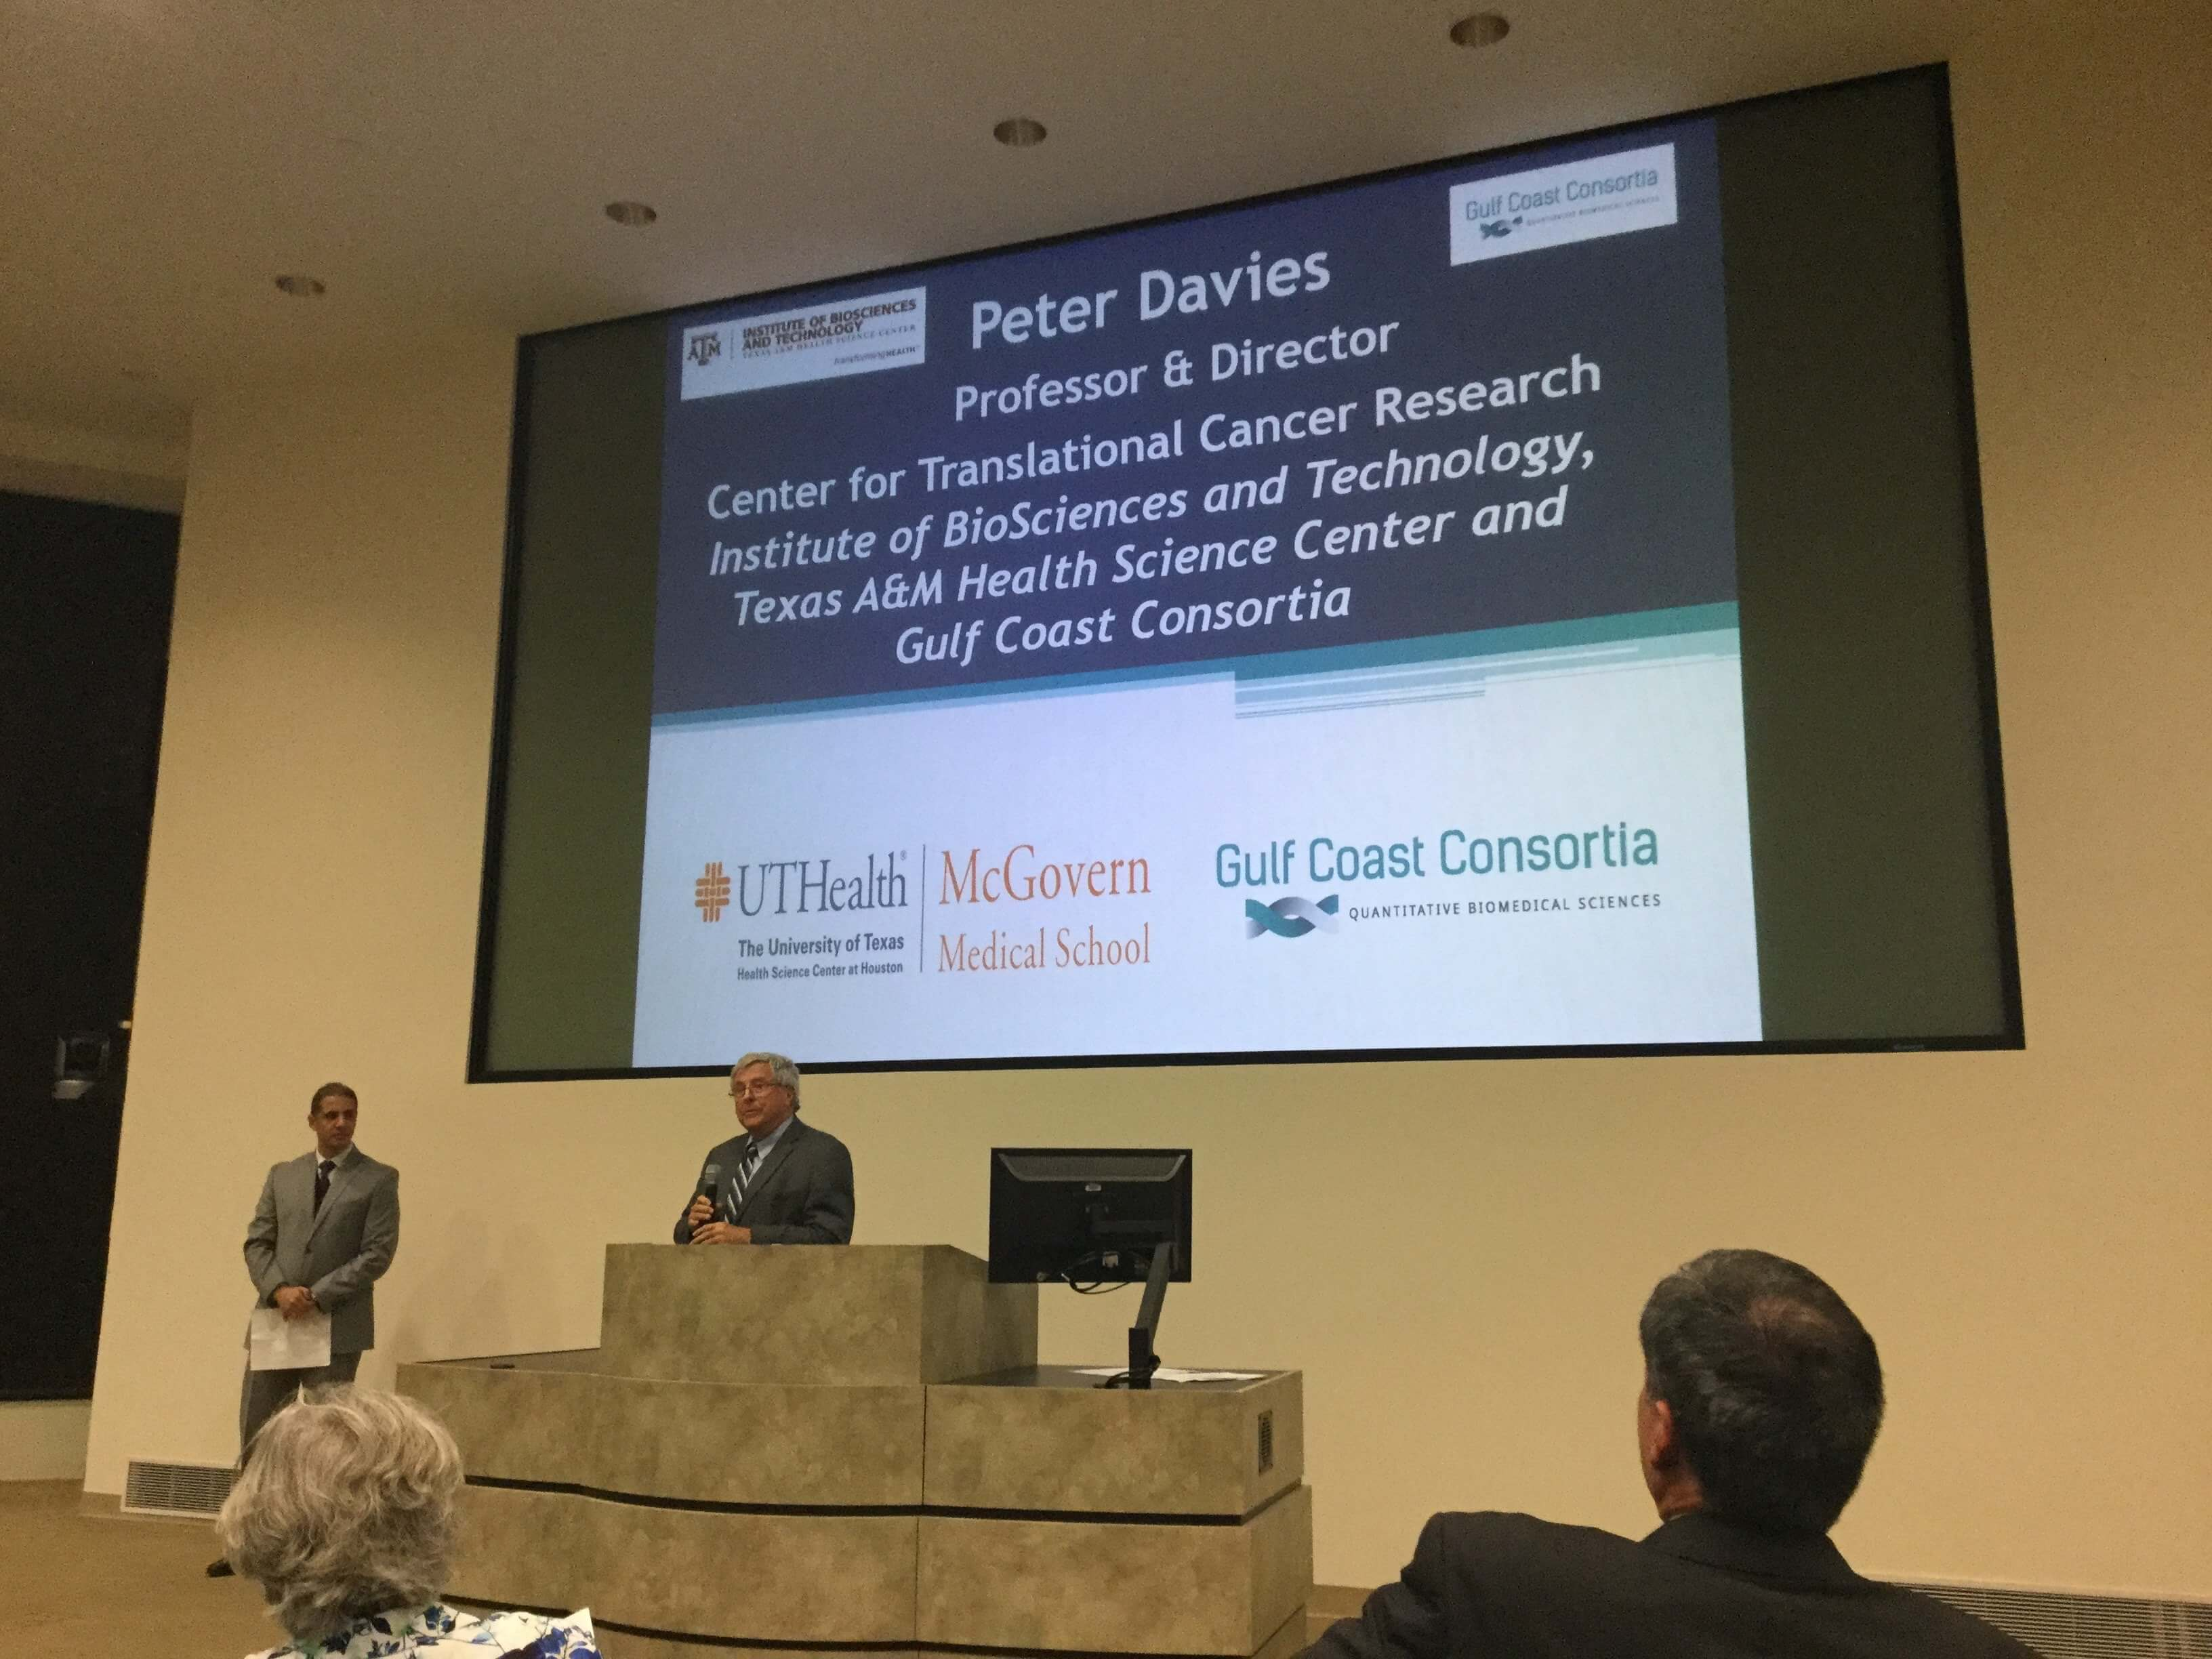 Peter Davies, M.D., Ph.D., professor and director of the Center for Translational Cancer Research Institute of BioSciences and Technology at Texas A&M University Health Science Center and Gulf Coast Consortia, thanks Arias for leading CARMiG.